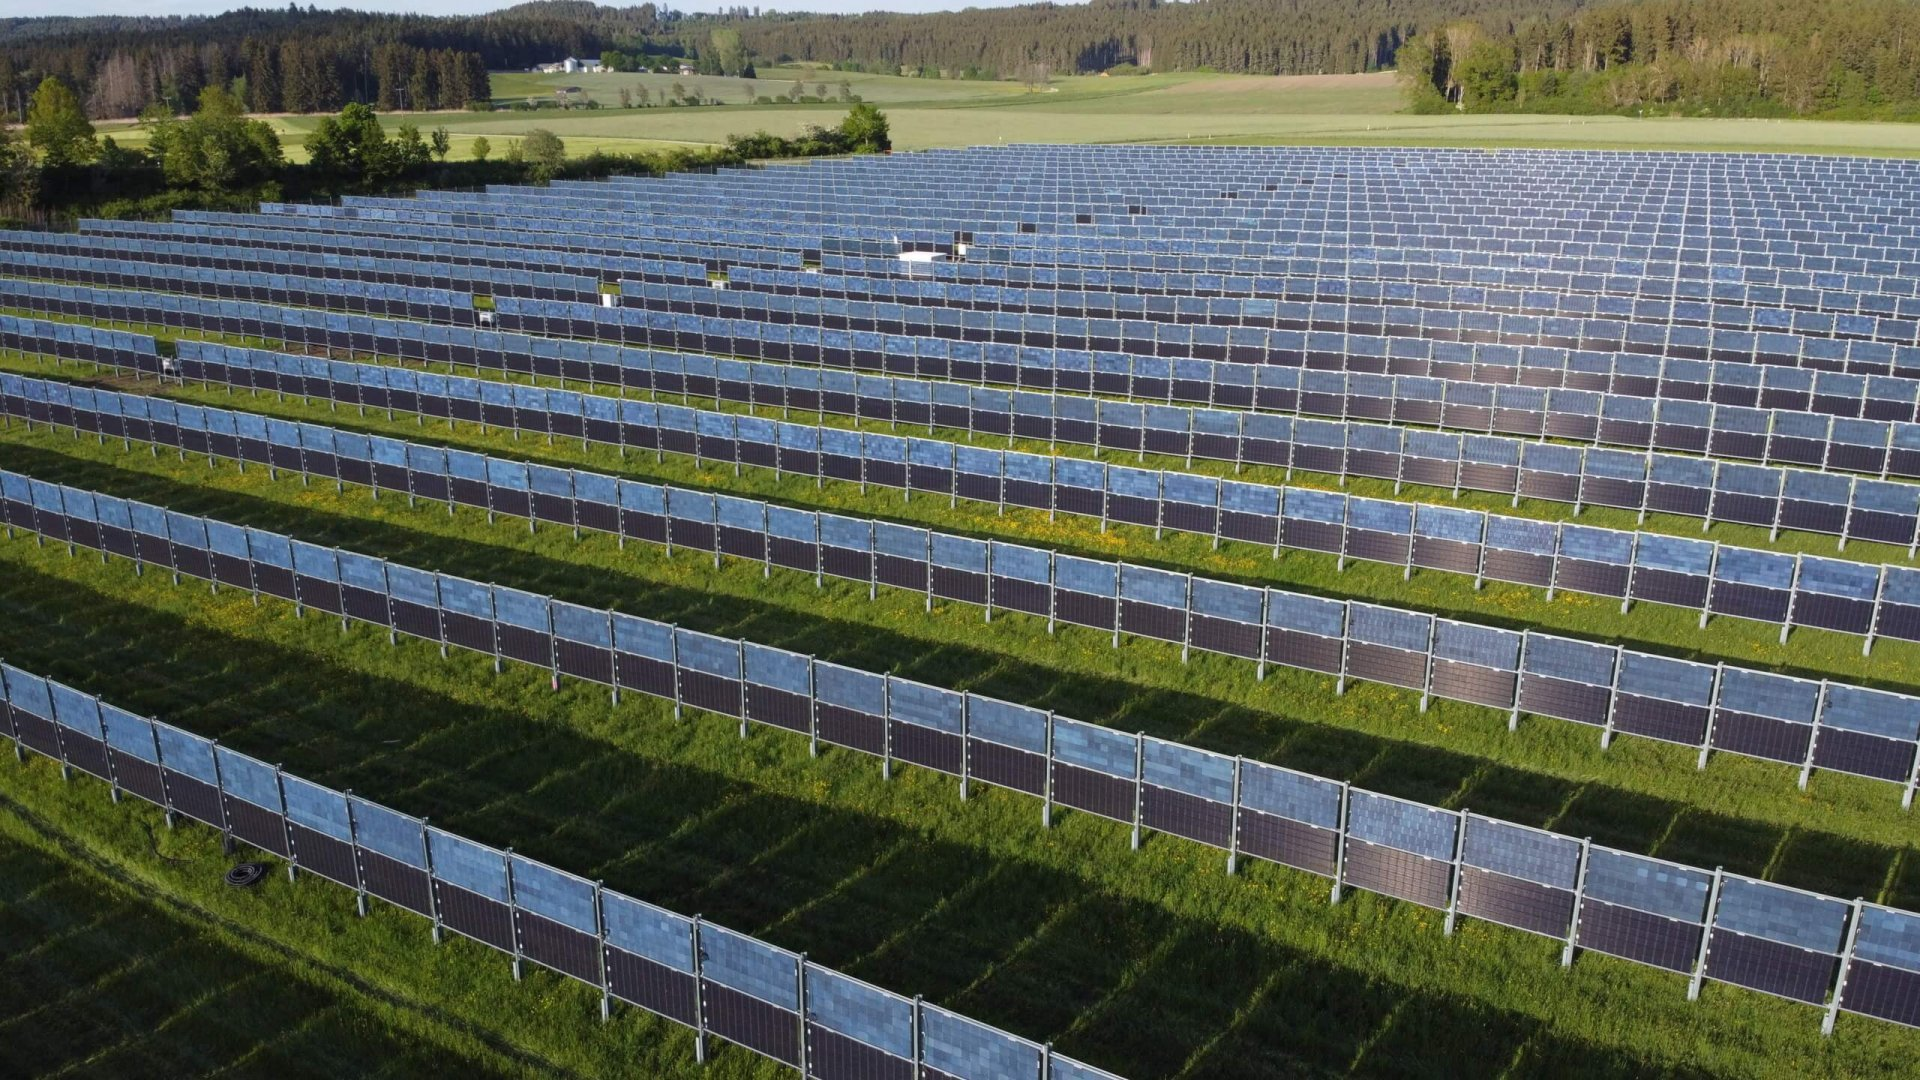 Solar farm Aasen-Donaueschingen (Baden-Württemberg, South Germany